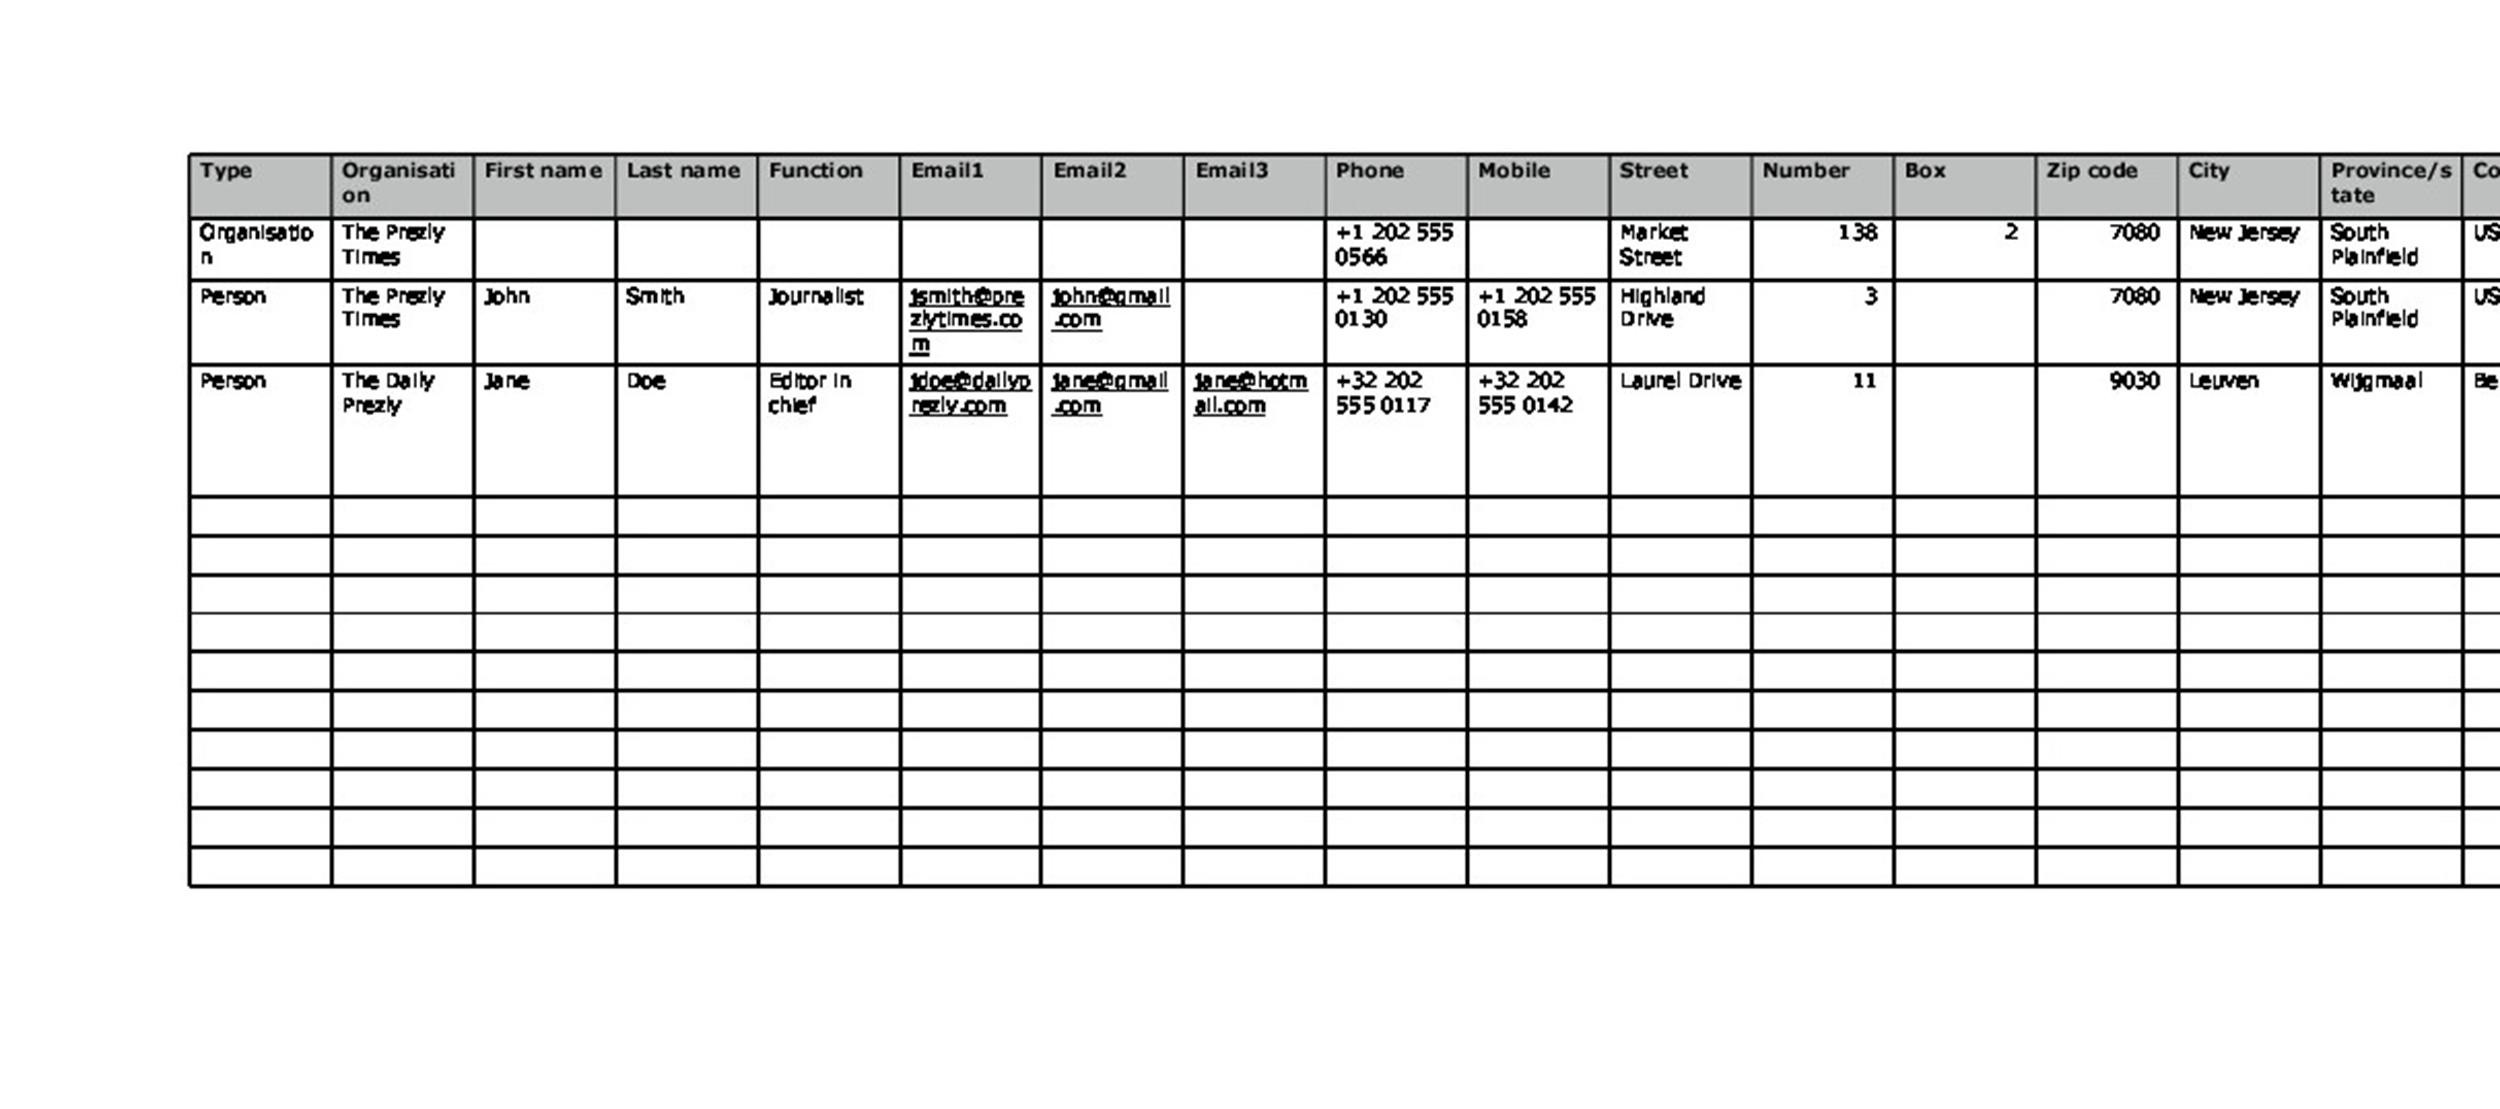 40 Phone  Email Contact List Templates Word, Excel - Template Lab - contact list templates